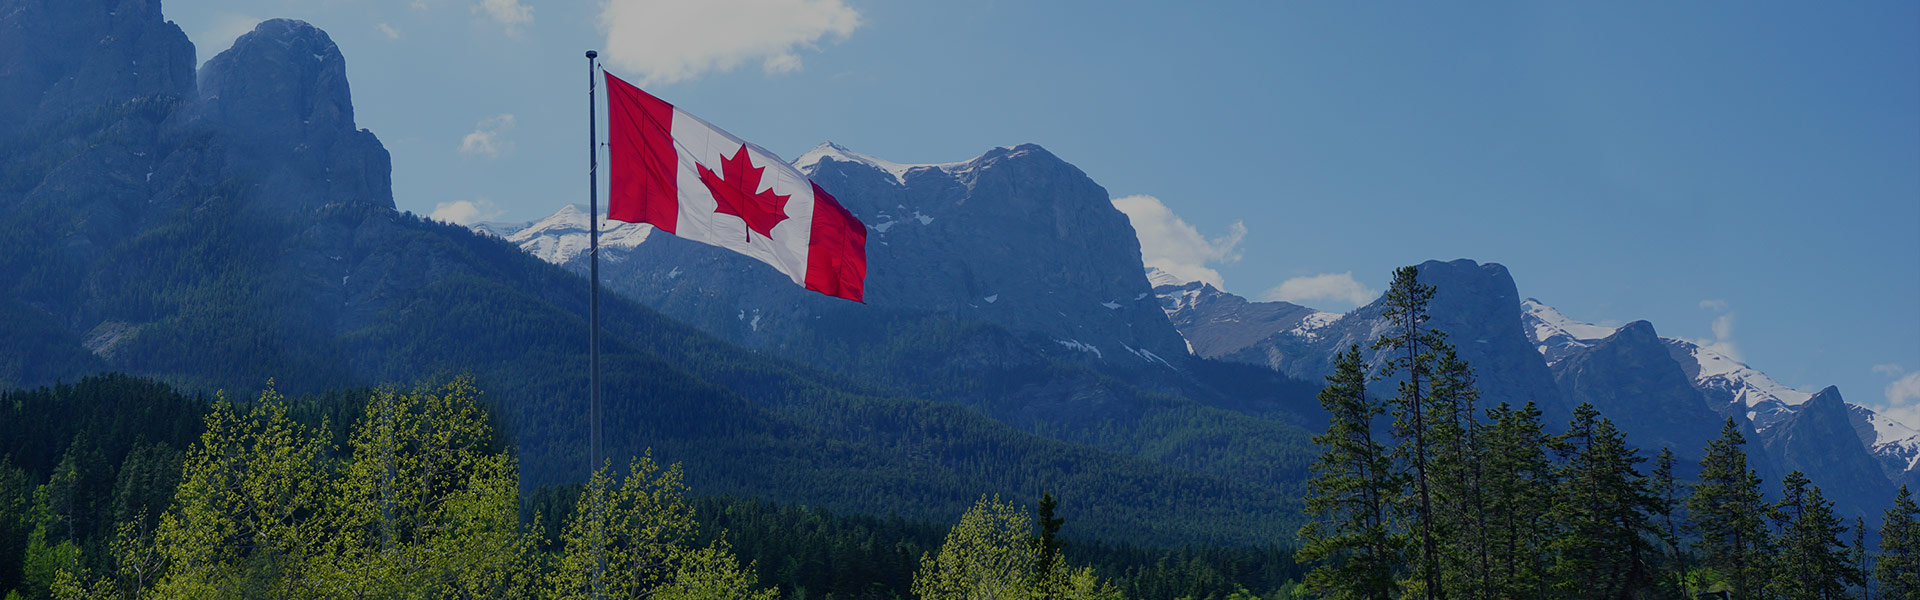 in-dey-go-header-slider-canada-flag-image